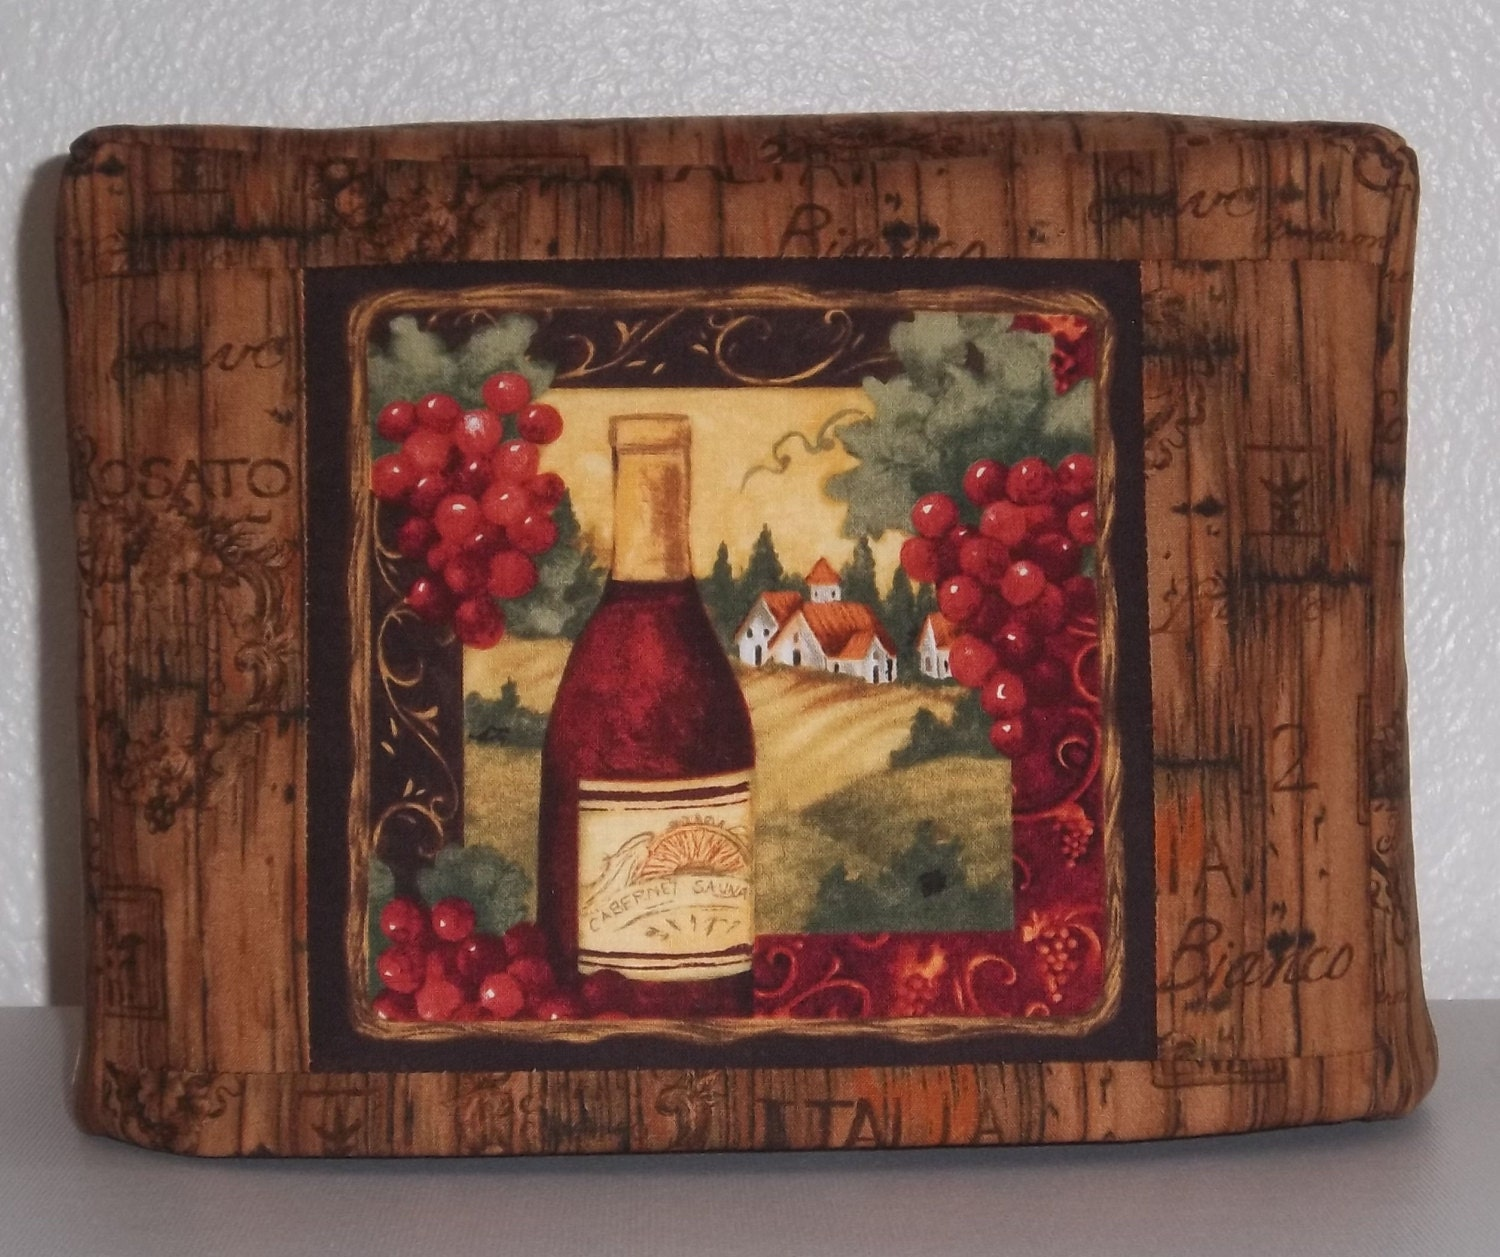 toaster cover 2 slice toaster cover with tuscan wine theme. Black Bedroom Furniture Sets. Home Design Ideas